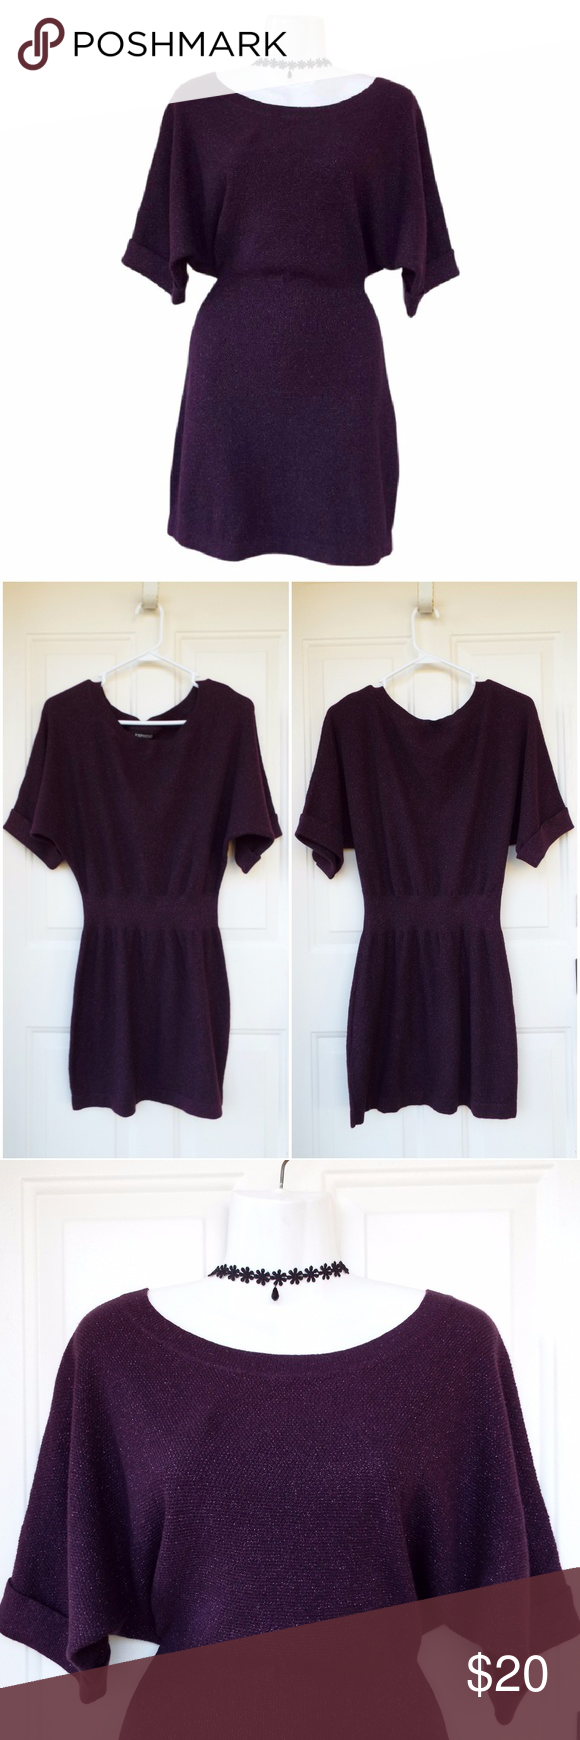 NEW Express Purple Sparkle Fall Sweater Dress S NWOT! New without ...